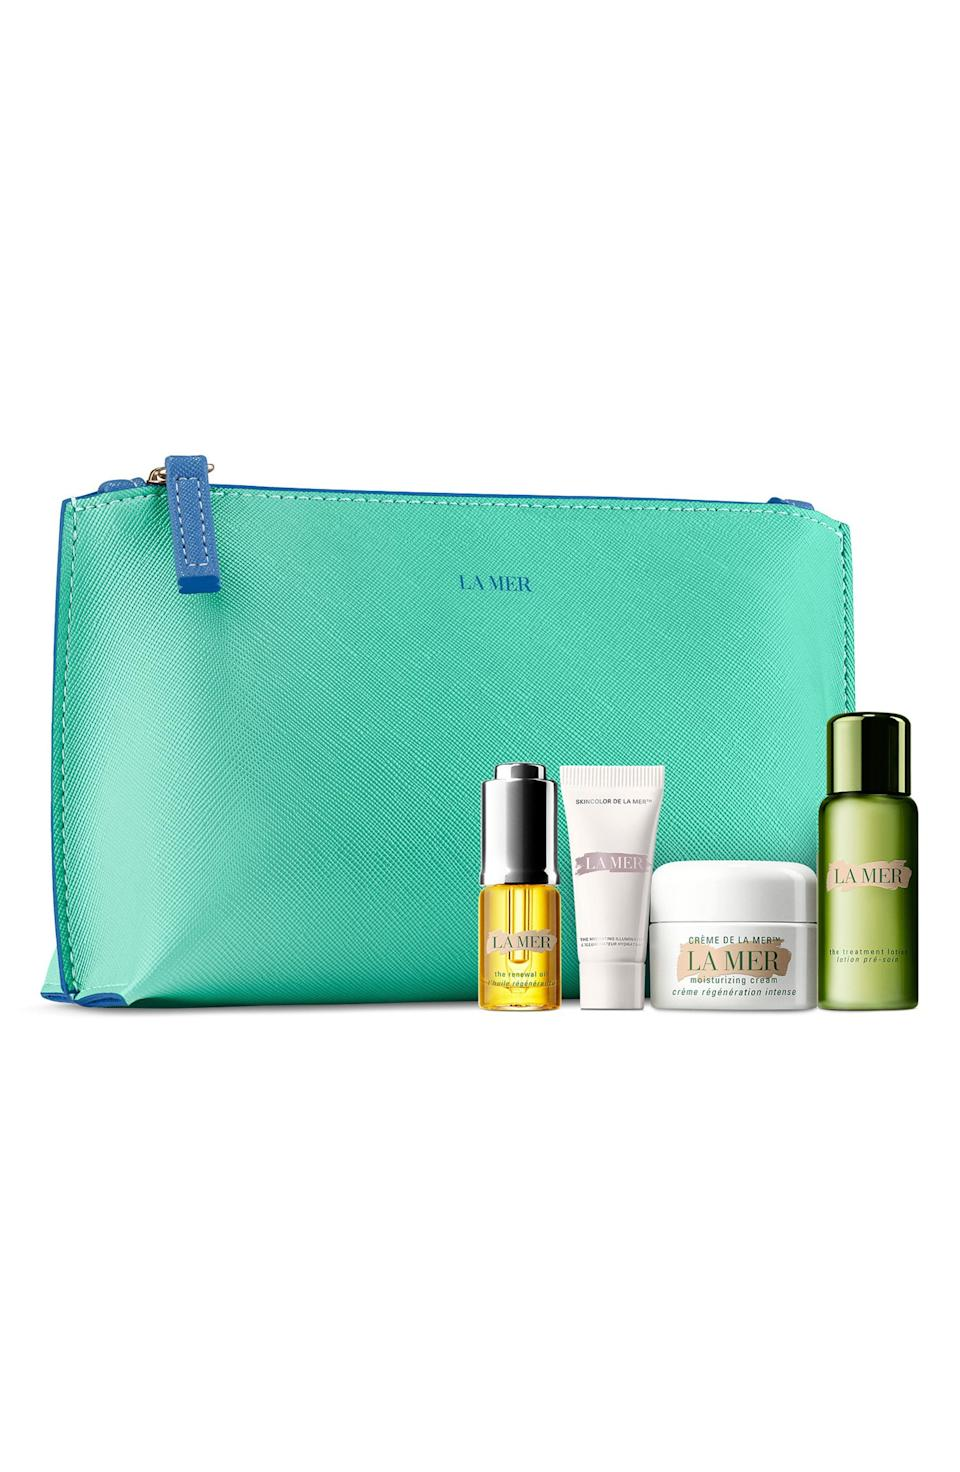 "<p><strong>LA MER</strong></p><p>nordstrom.com</p><p><strong>$90.00</strong></p><p><a href=""https://go.redirectingat.com?id=74968X1596630&url=https%3A%2F%2Fwww.nordstrom.com%2Fs%2Fla-mer-mini-hydration-collection-creme-set-155-value%2F5588613&sref=https%3A%2F%2Fwww.townandcountrymag.com%2Fstyle%2Fbeauty-products%2Fg33595678%2Fbeauty-buys-to-pick-up-during-the-2020-nordstrom-anniversary-sale%2F"" rel=""nofollow noopener"" target=""_blank"" data-ylk=""slk:Shop Now"" class=""link rapid-noclick-resp"">Shop Now</a></p><p><em>Value: $155</em></p>"